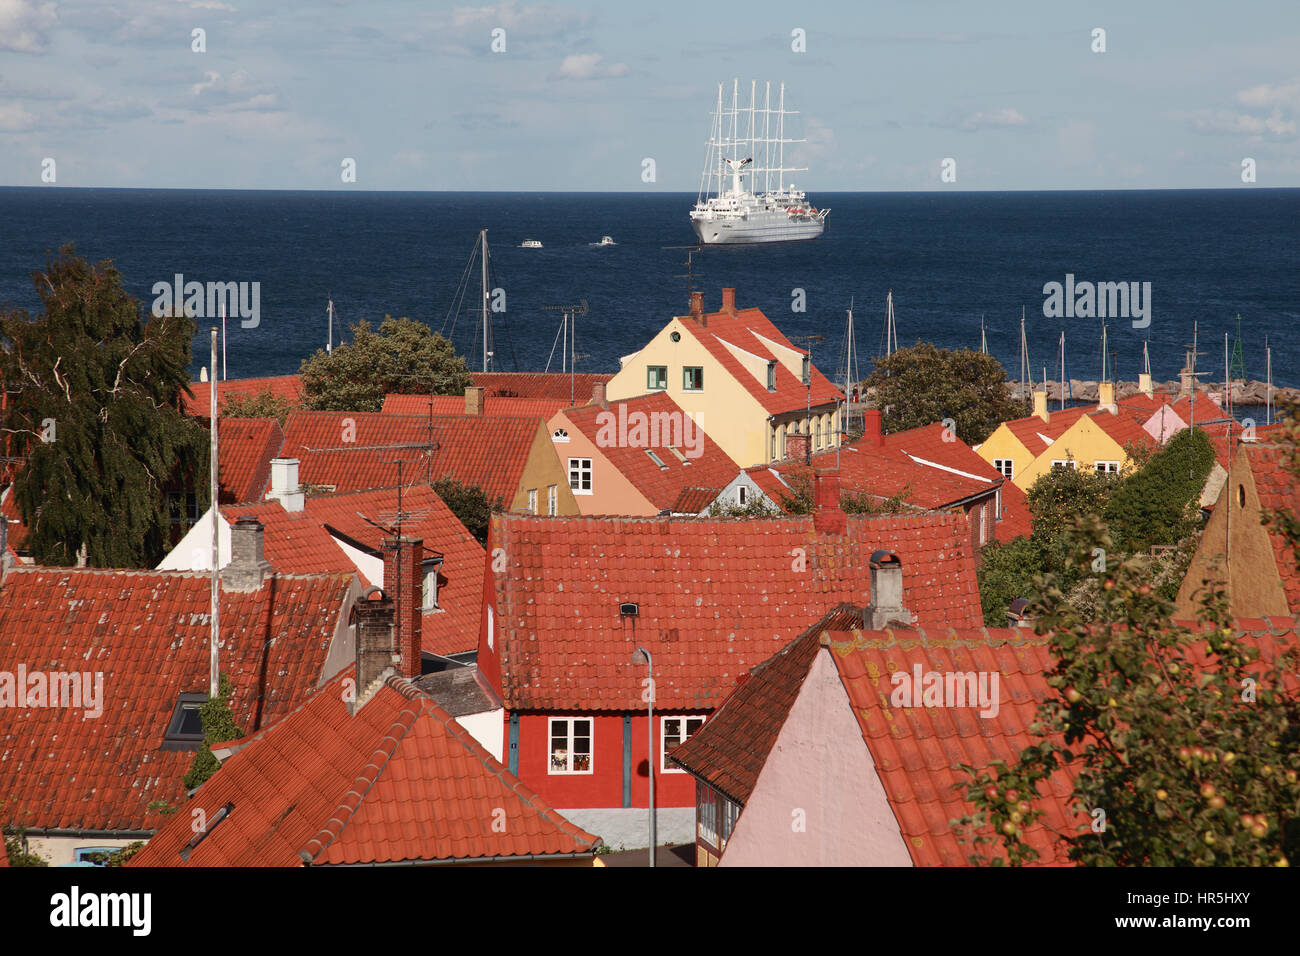 Club Med 2, a sailing ship with 5 masts moored off the small town of Svaneke, on the Baltic island of Bornholm, Stock Photo